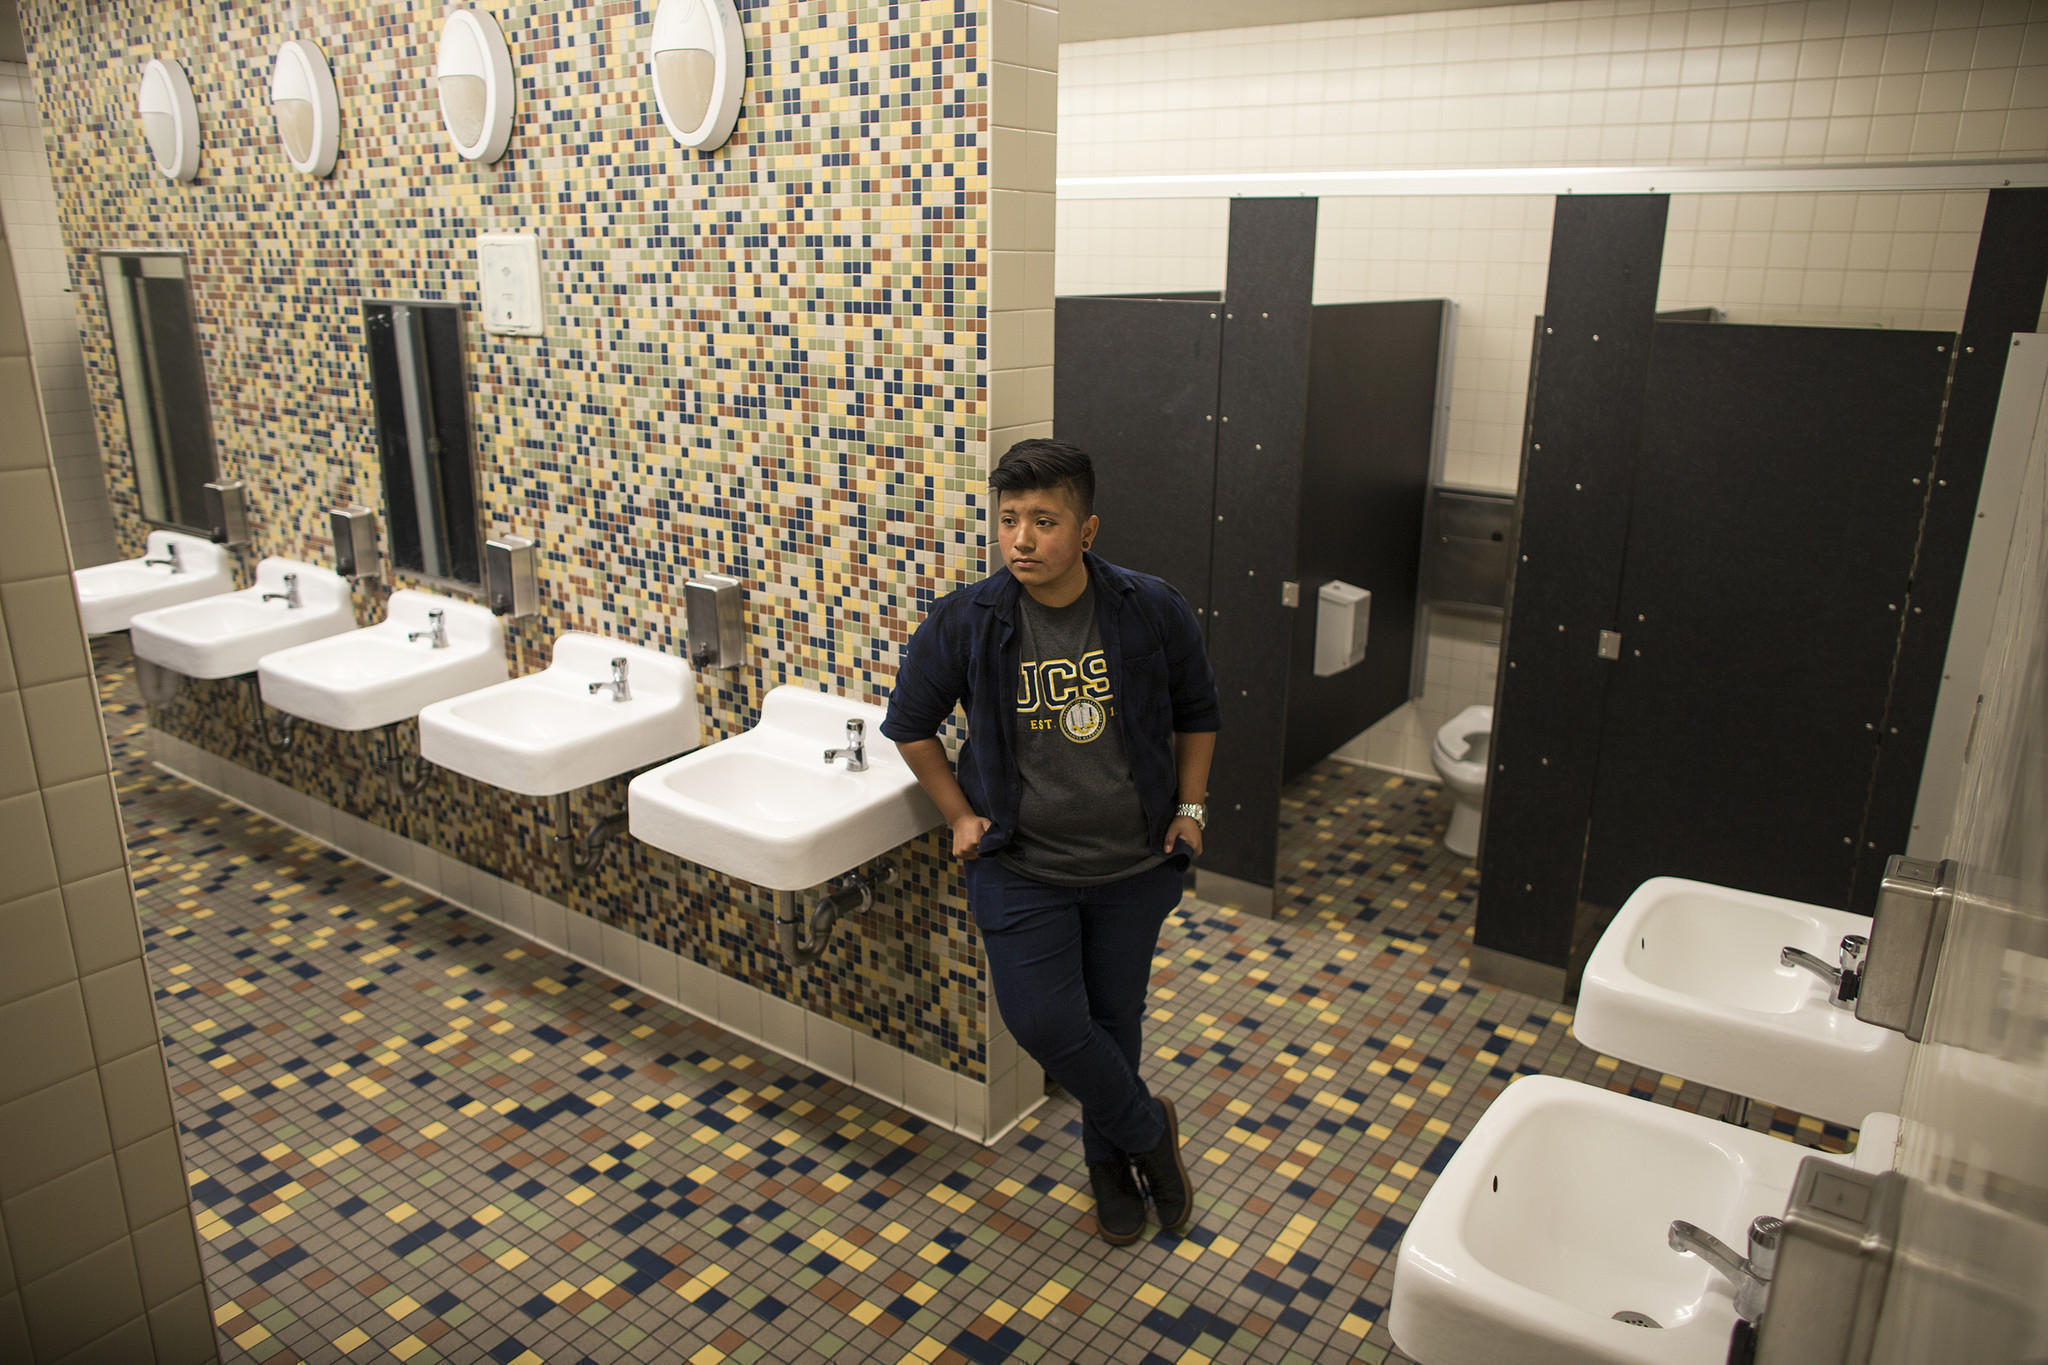 This School Is Opening The First Gender-neutral Bathroom